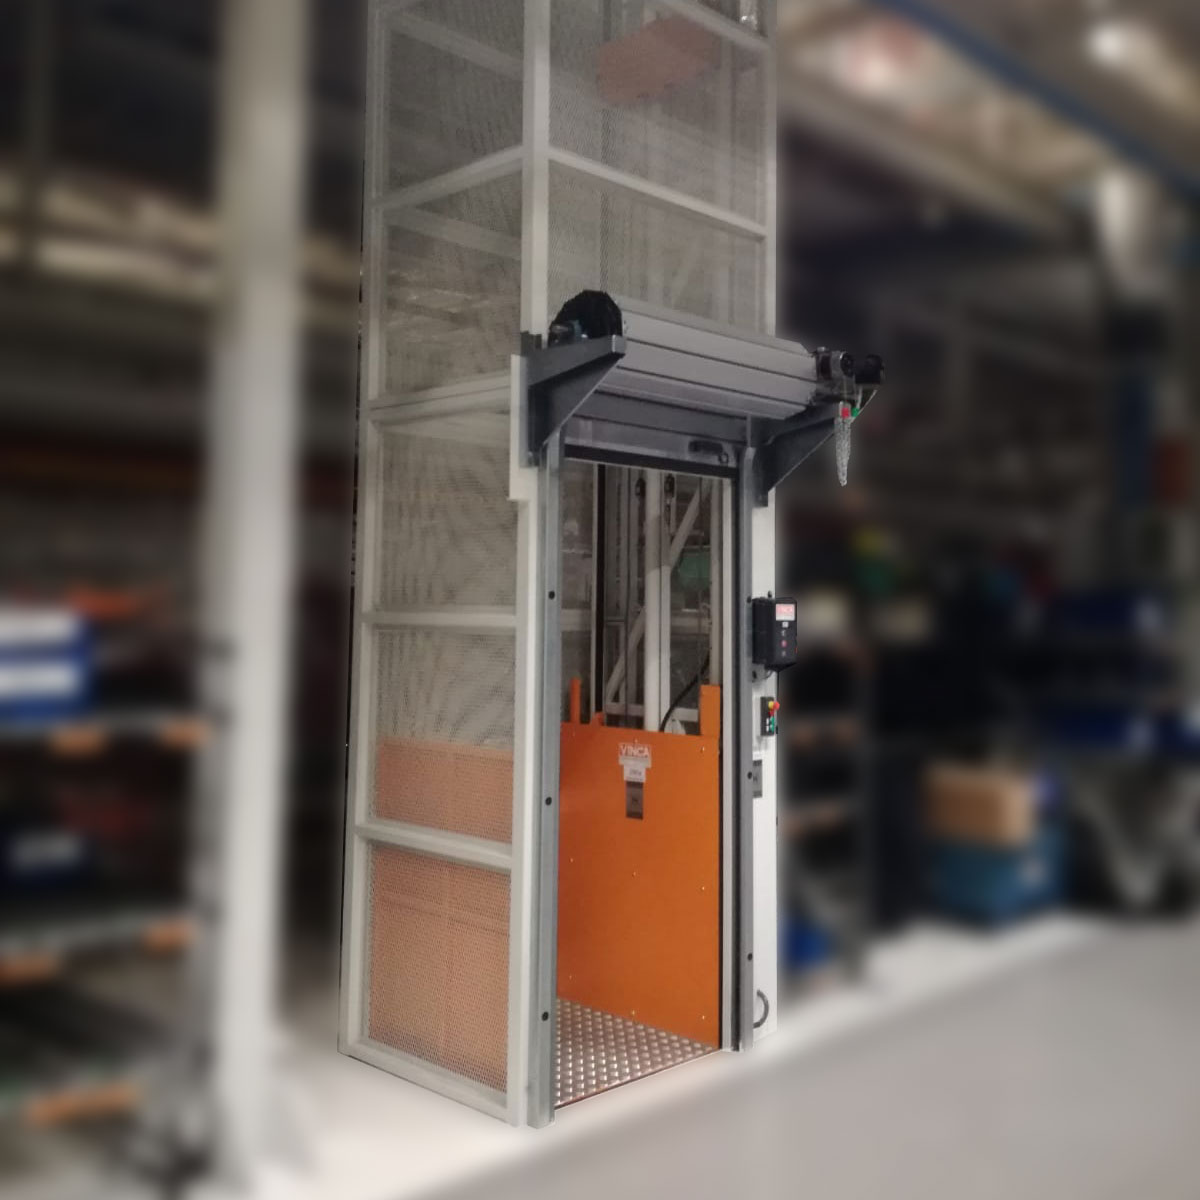 SEAT project: PLT lifting platform